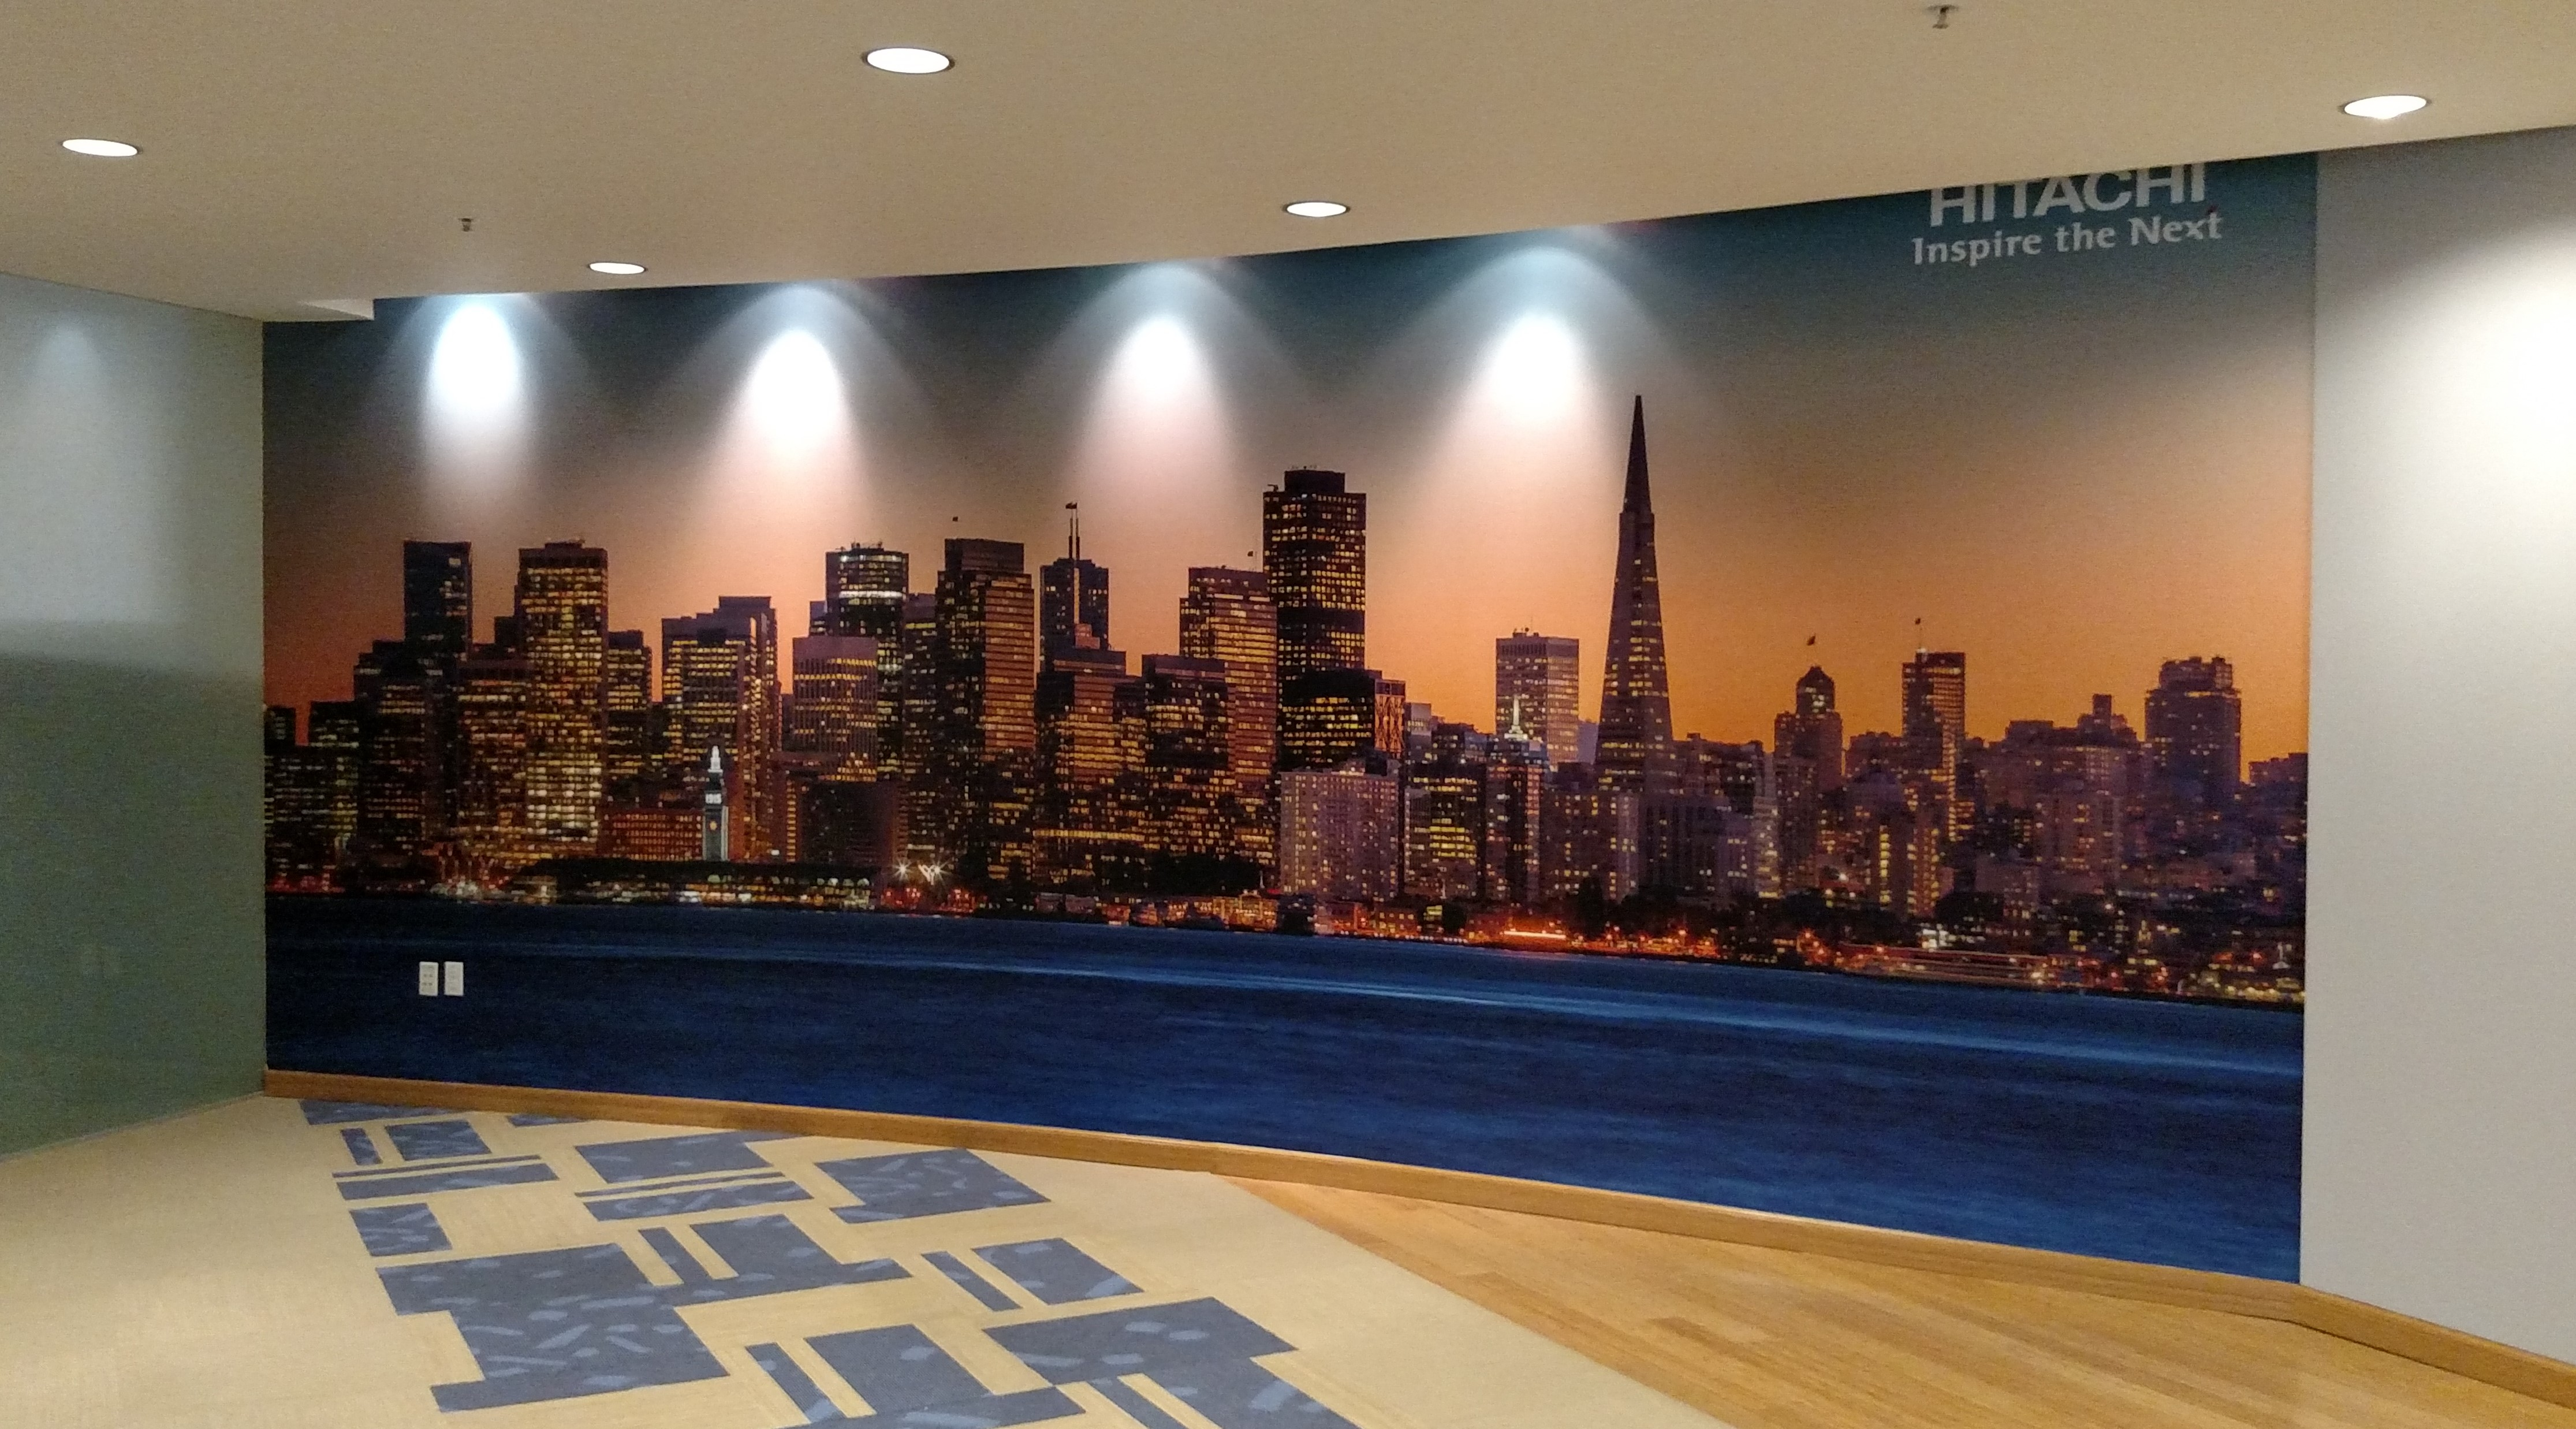 Wall Murals Hitachi Signs Unlimited